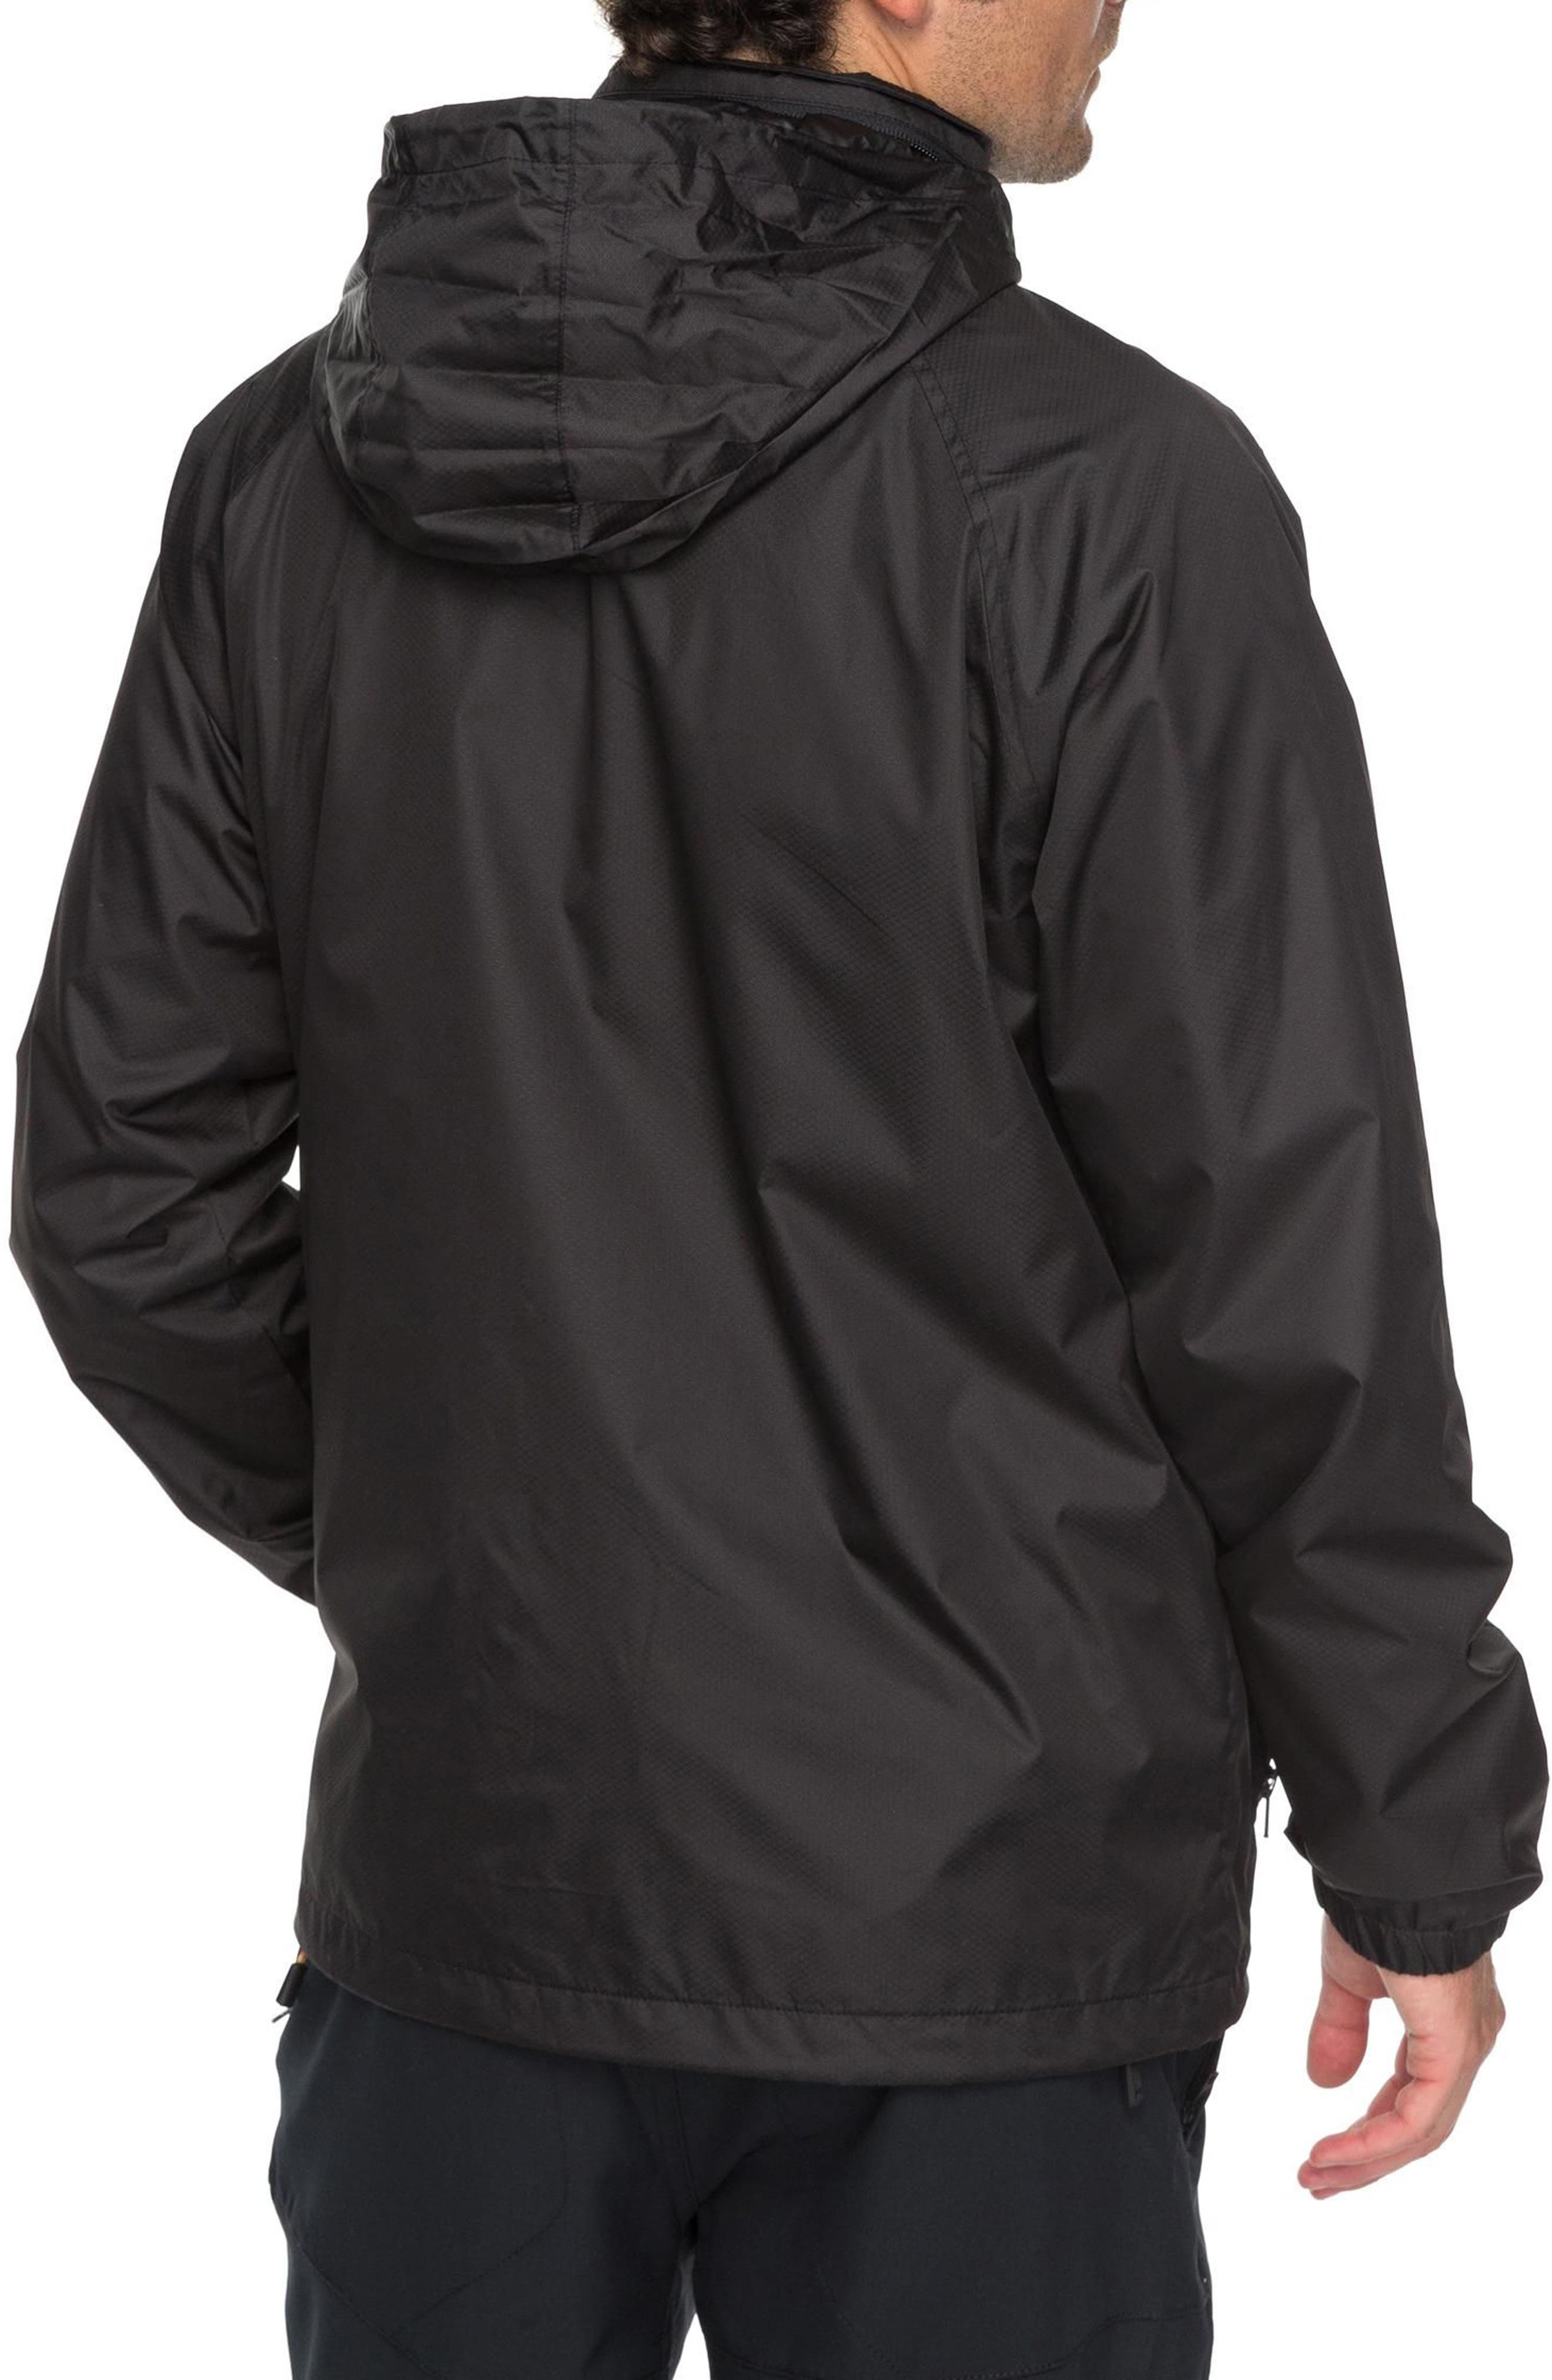 Shell Shock Water Repellent Windbreaker,                             Alternate thumbnail 2, color,                             Black